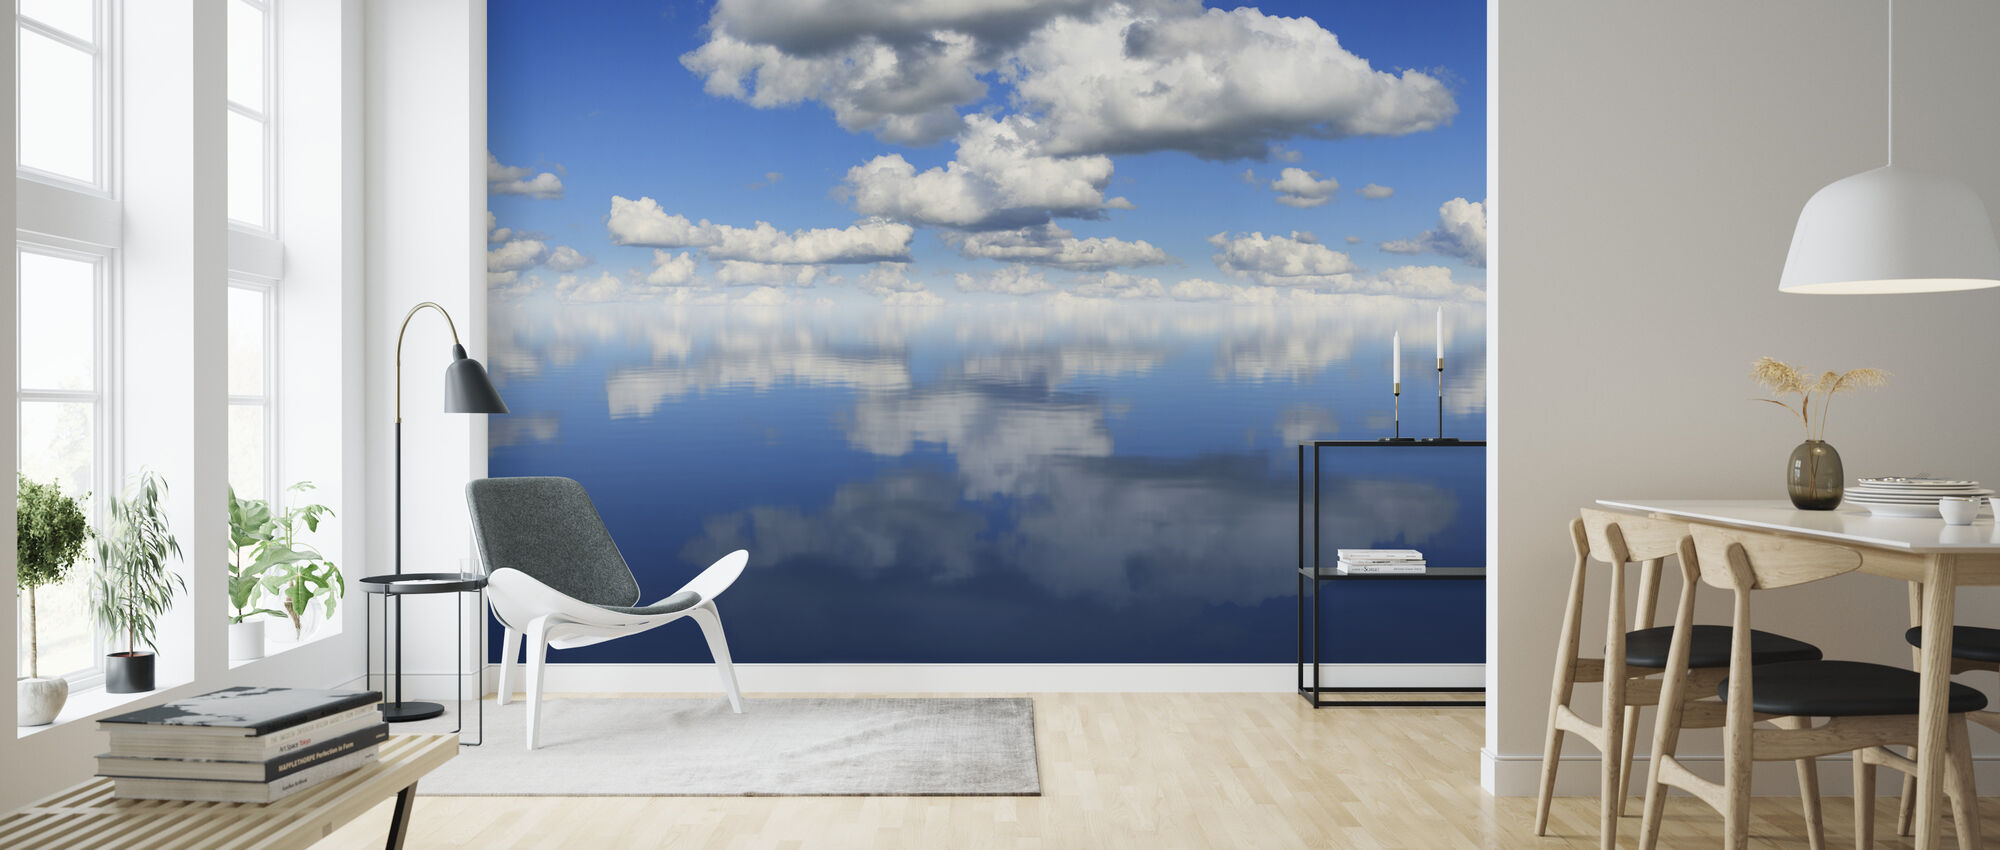 Mirror Sea - Wallpaper - Living Room